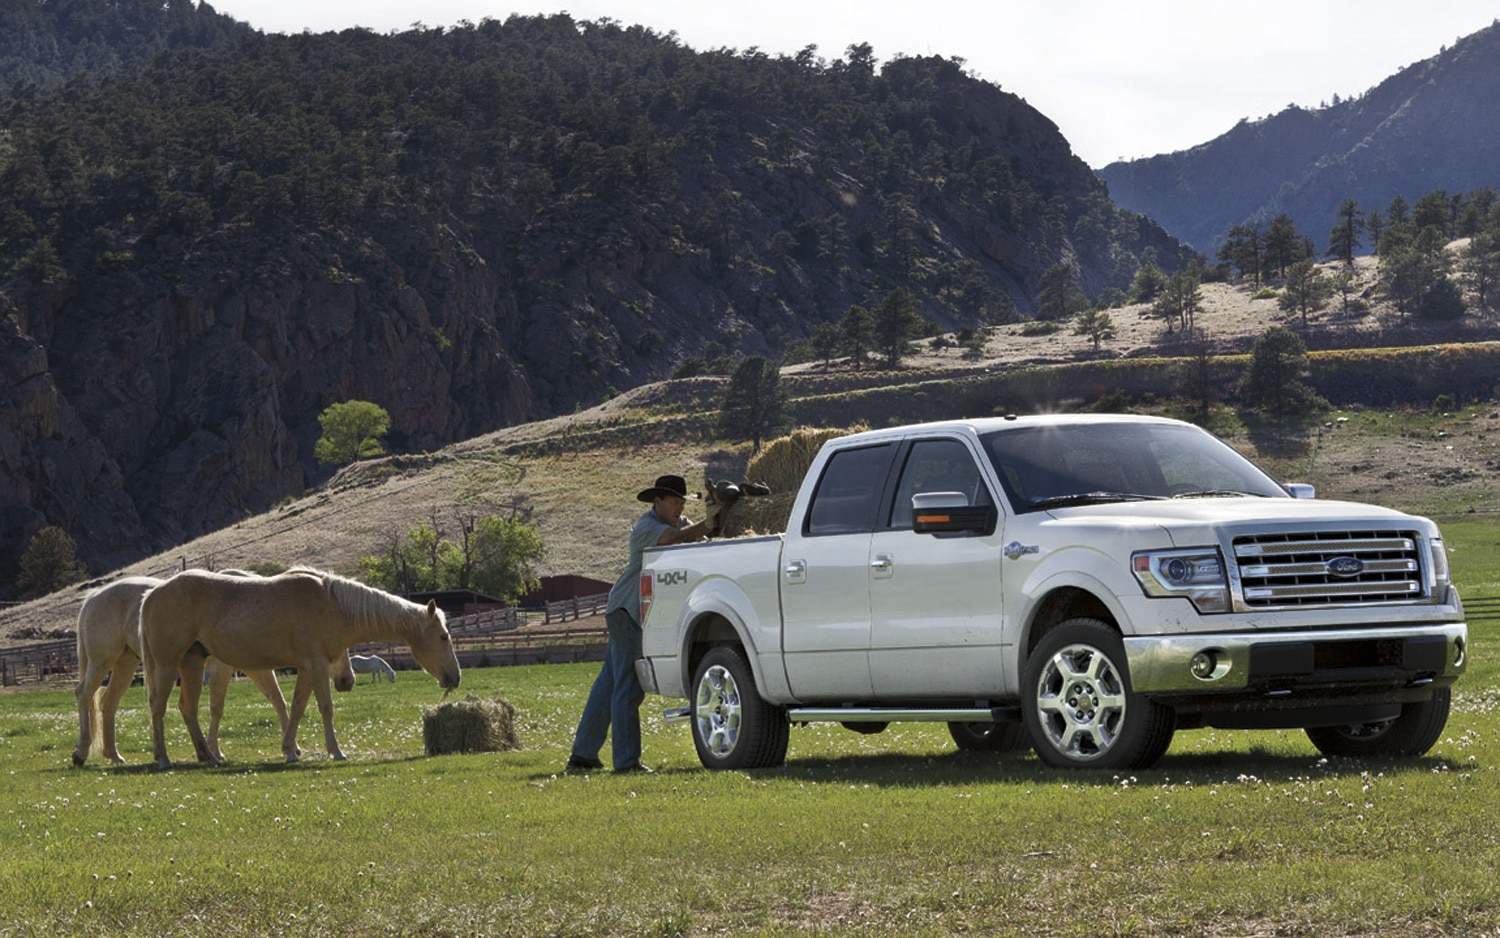 2013 Ford F 150 King Ranch Front View With Horse1